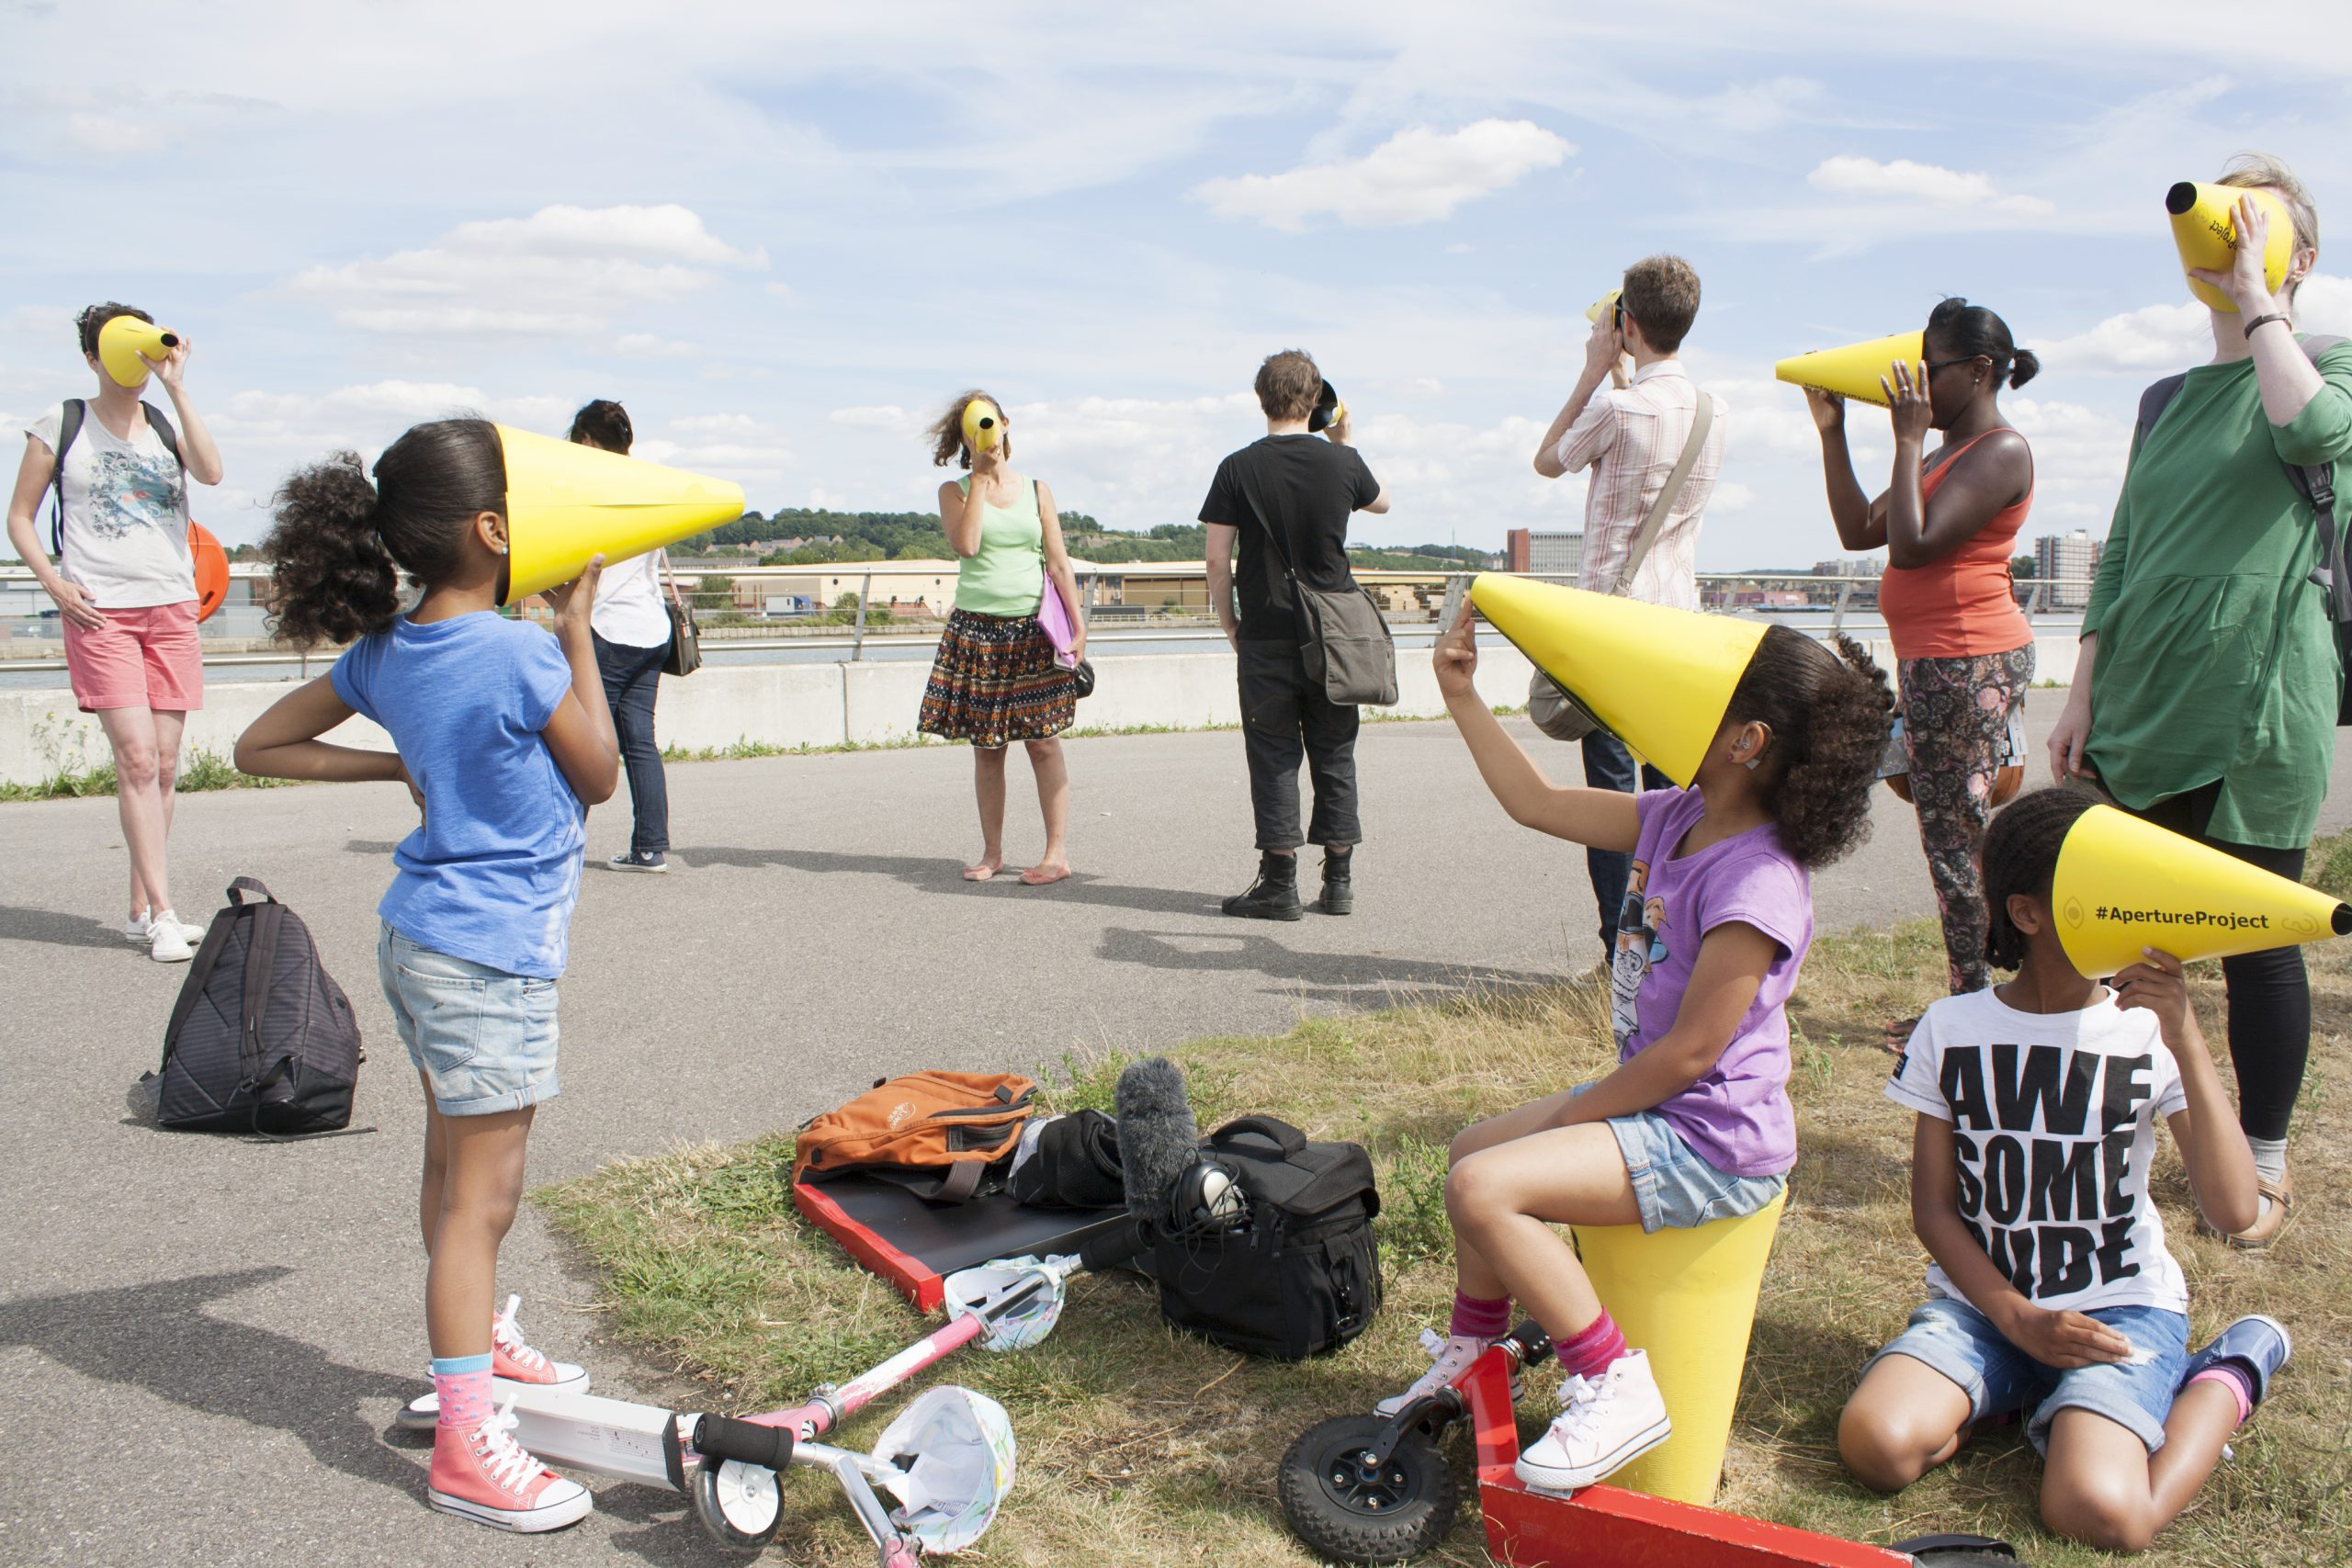 Children with yellow cones on their faces